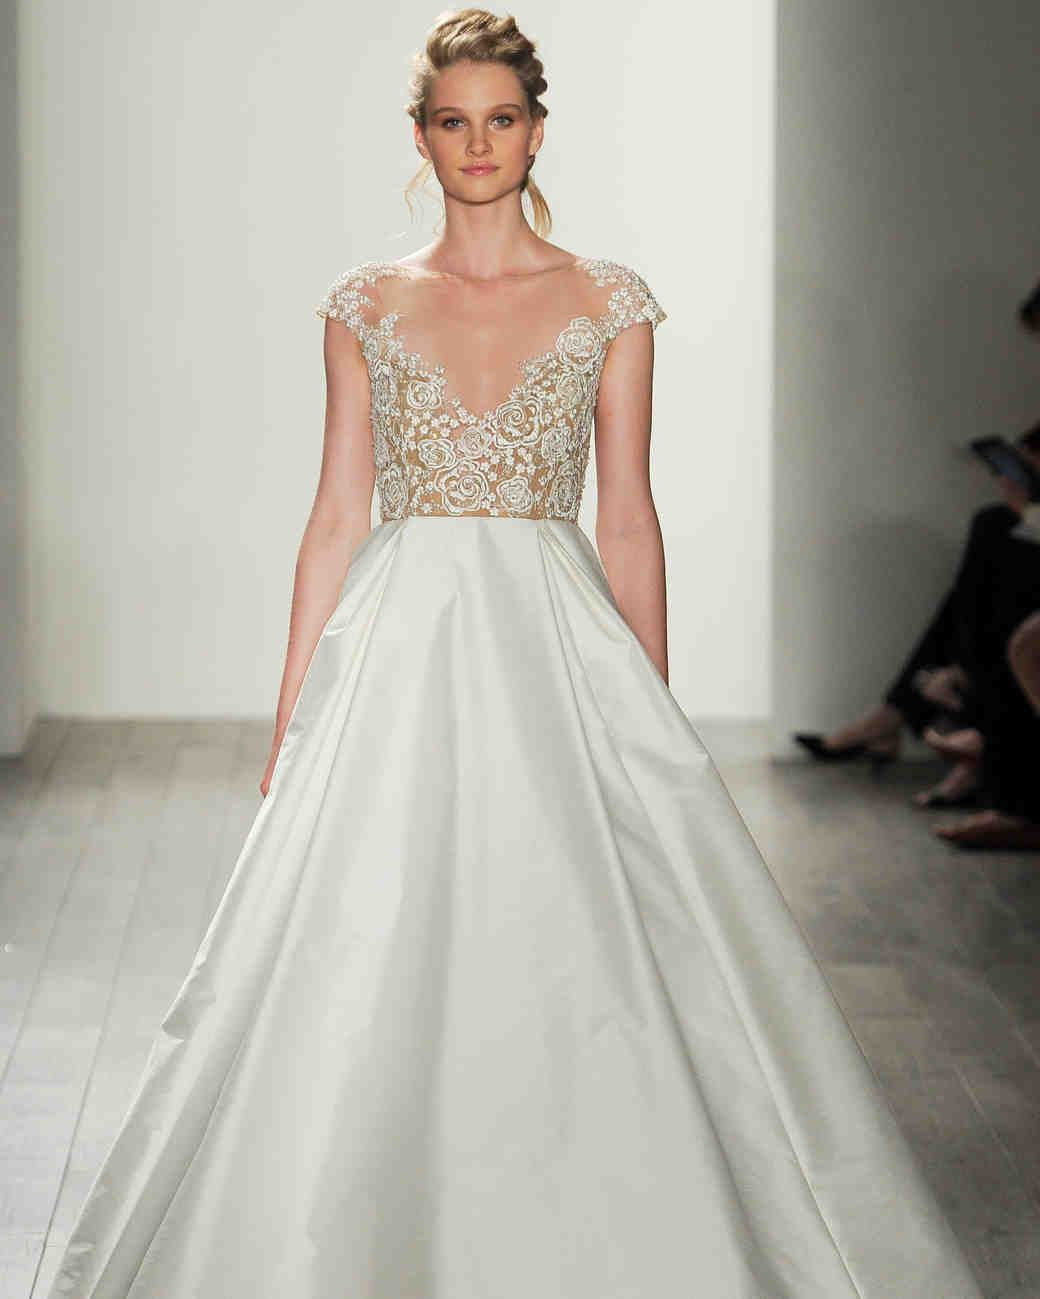 Hayley Paige Fall 2017 Wedding Dress Collection